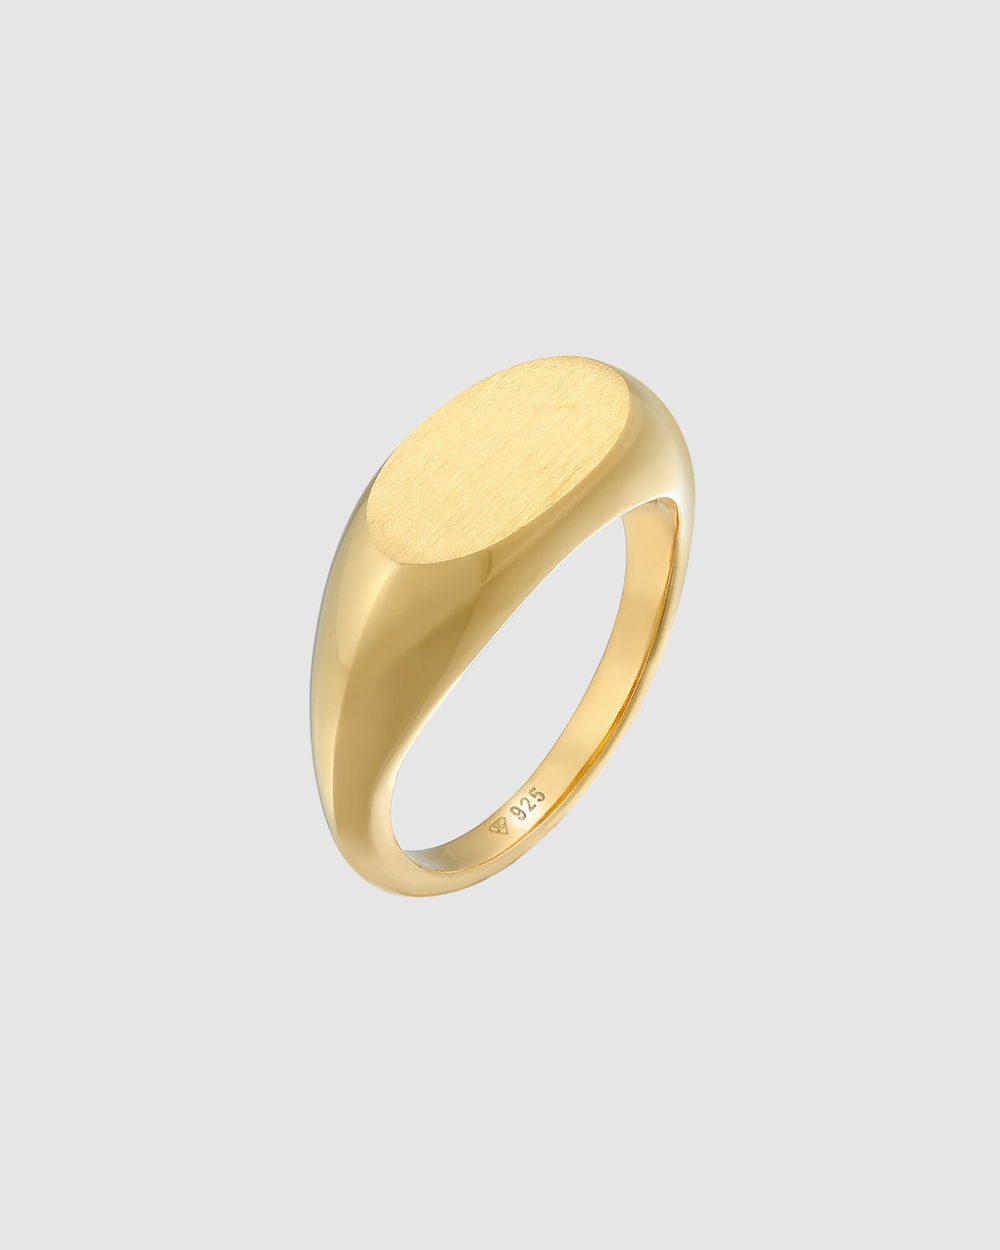 Elli Jewelry Ring Signet Oval Basic Trend in 925 Sterling Silver Gold Plated Jewellery Gold